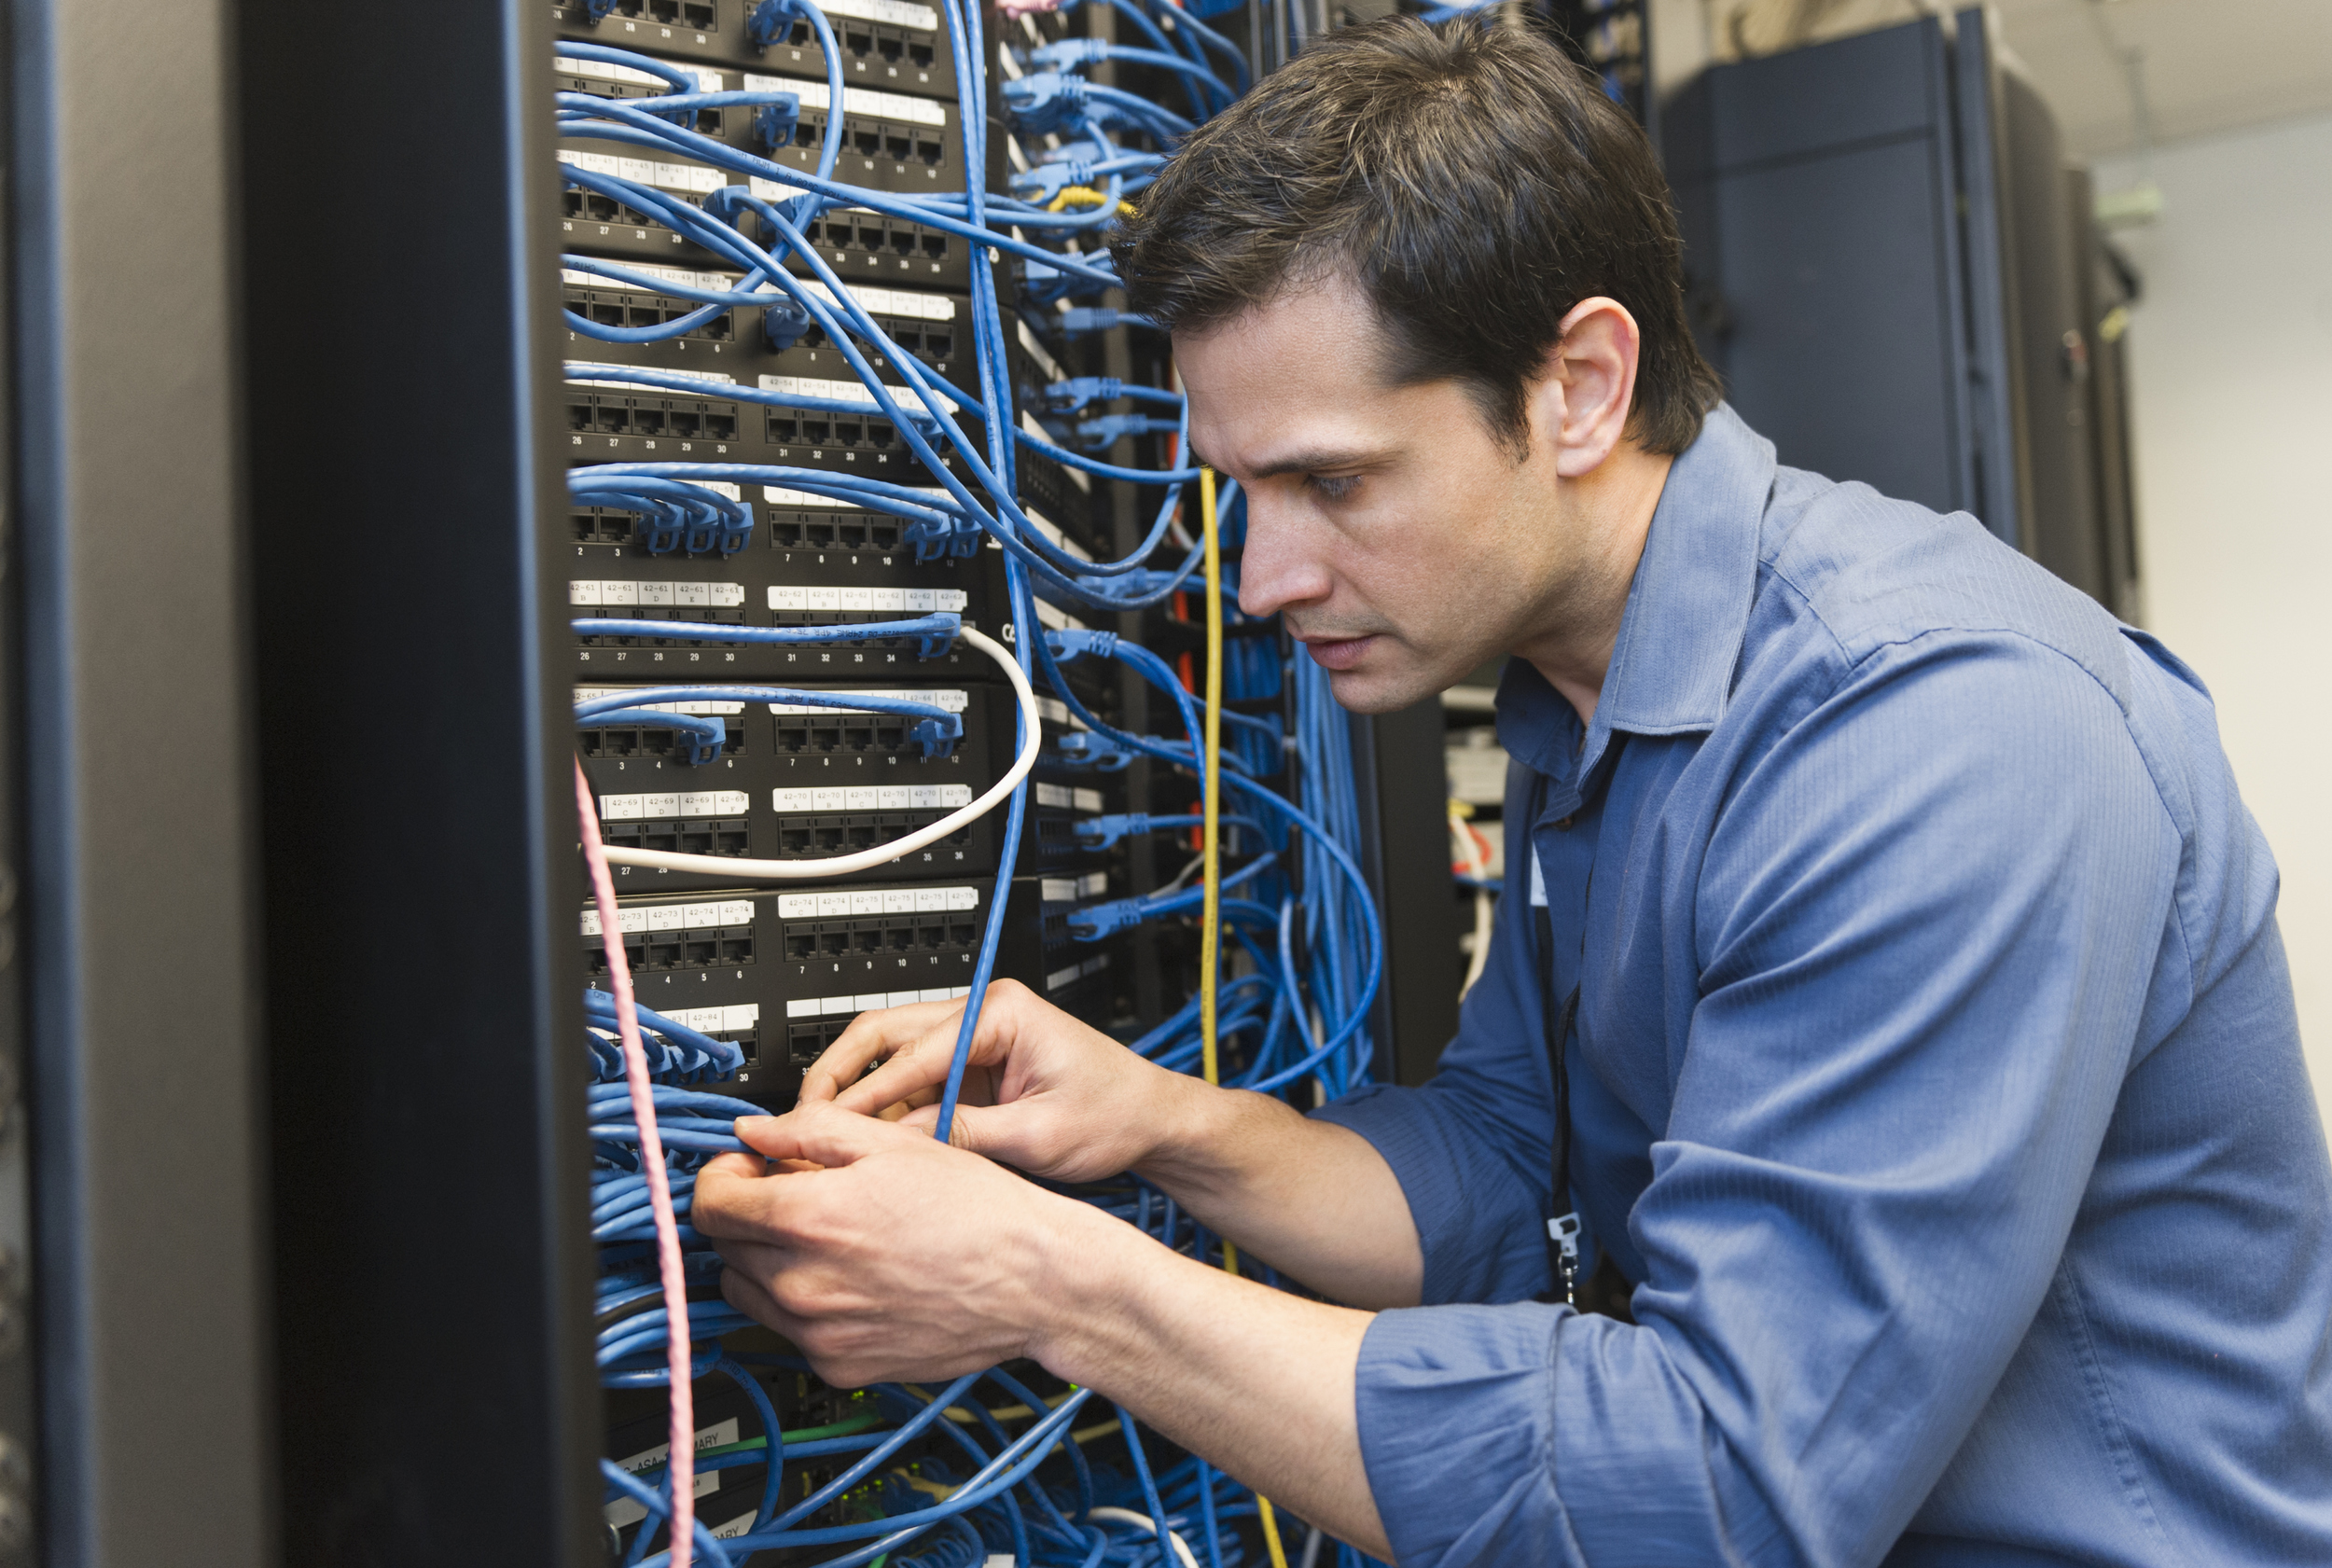 Career choice network and computer systems